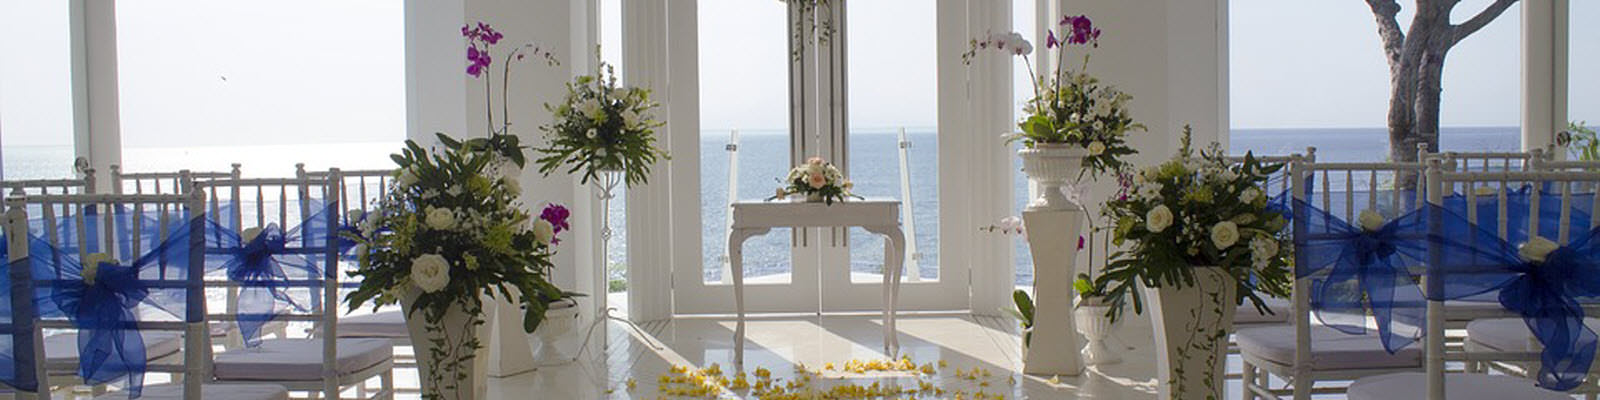 Wedding venue designs